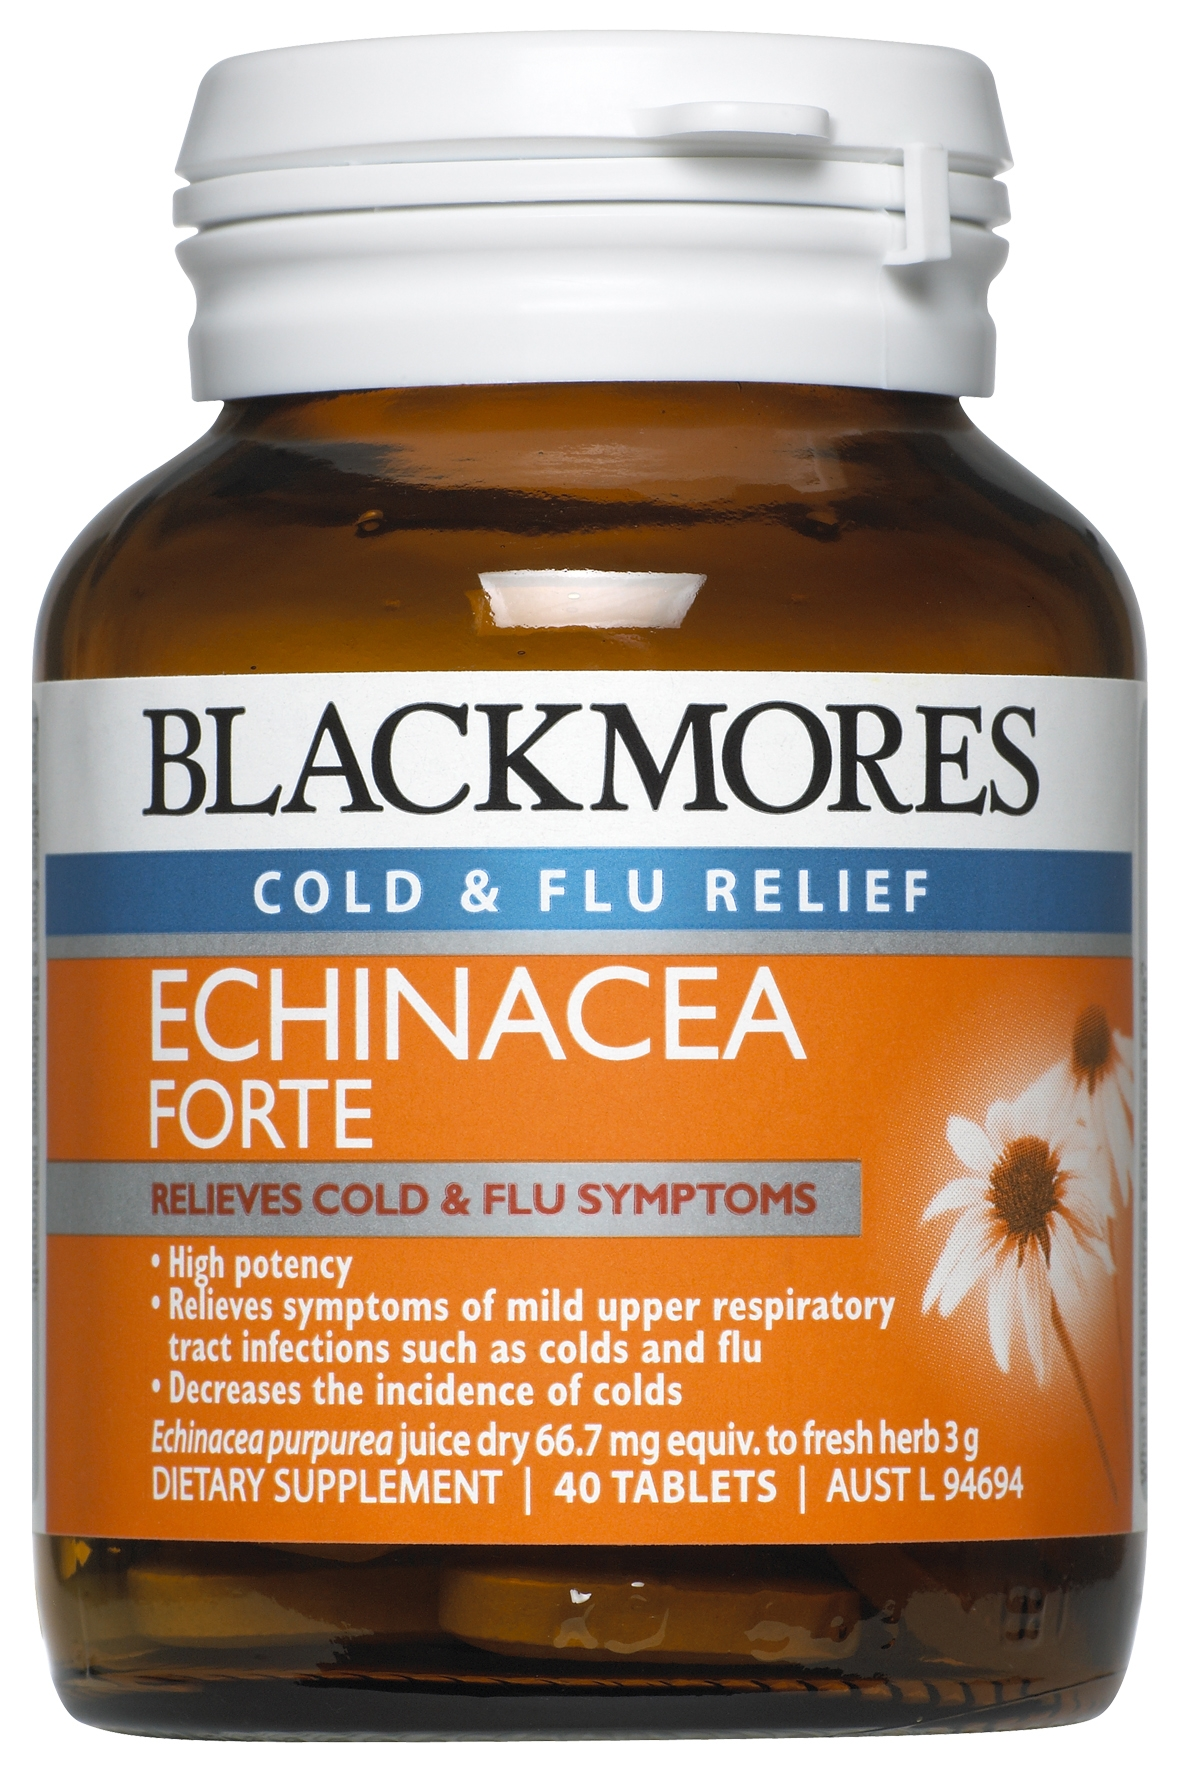 Buy Blackmores Echinacea Forte Online 40 Tabs